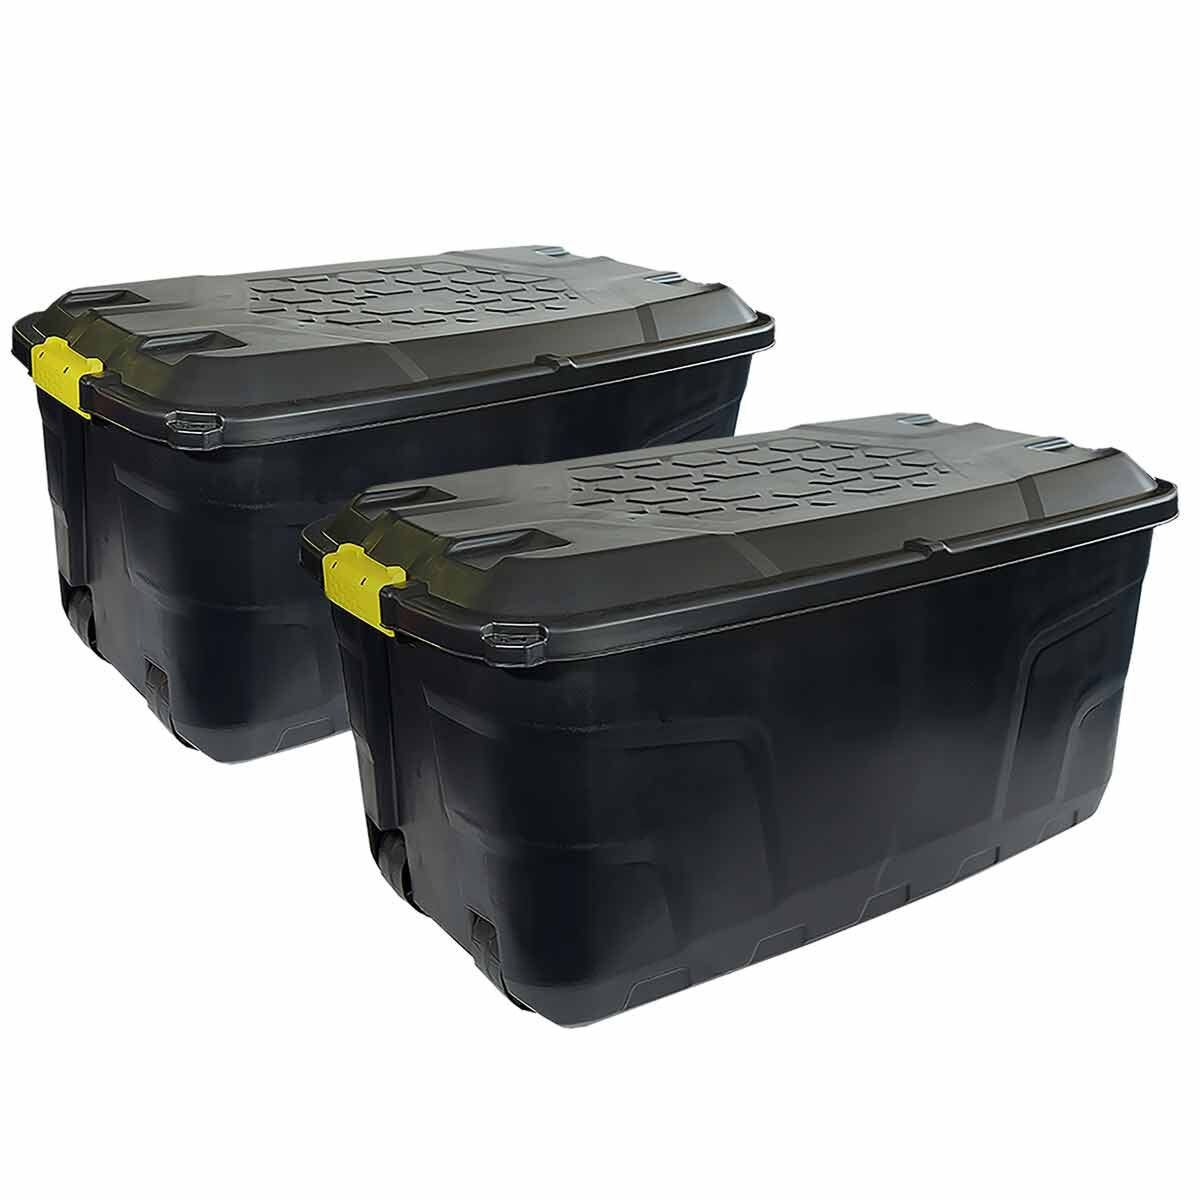 Charles Bentley Strata Heavy Duty Trunk with Wheels 145L Set of 2